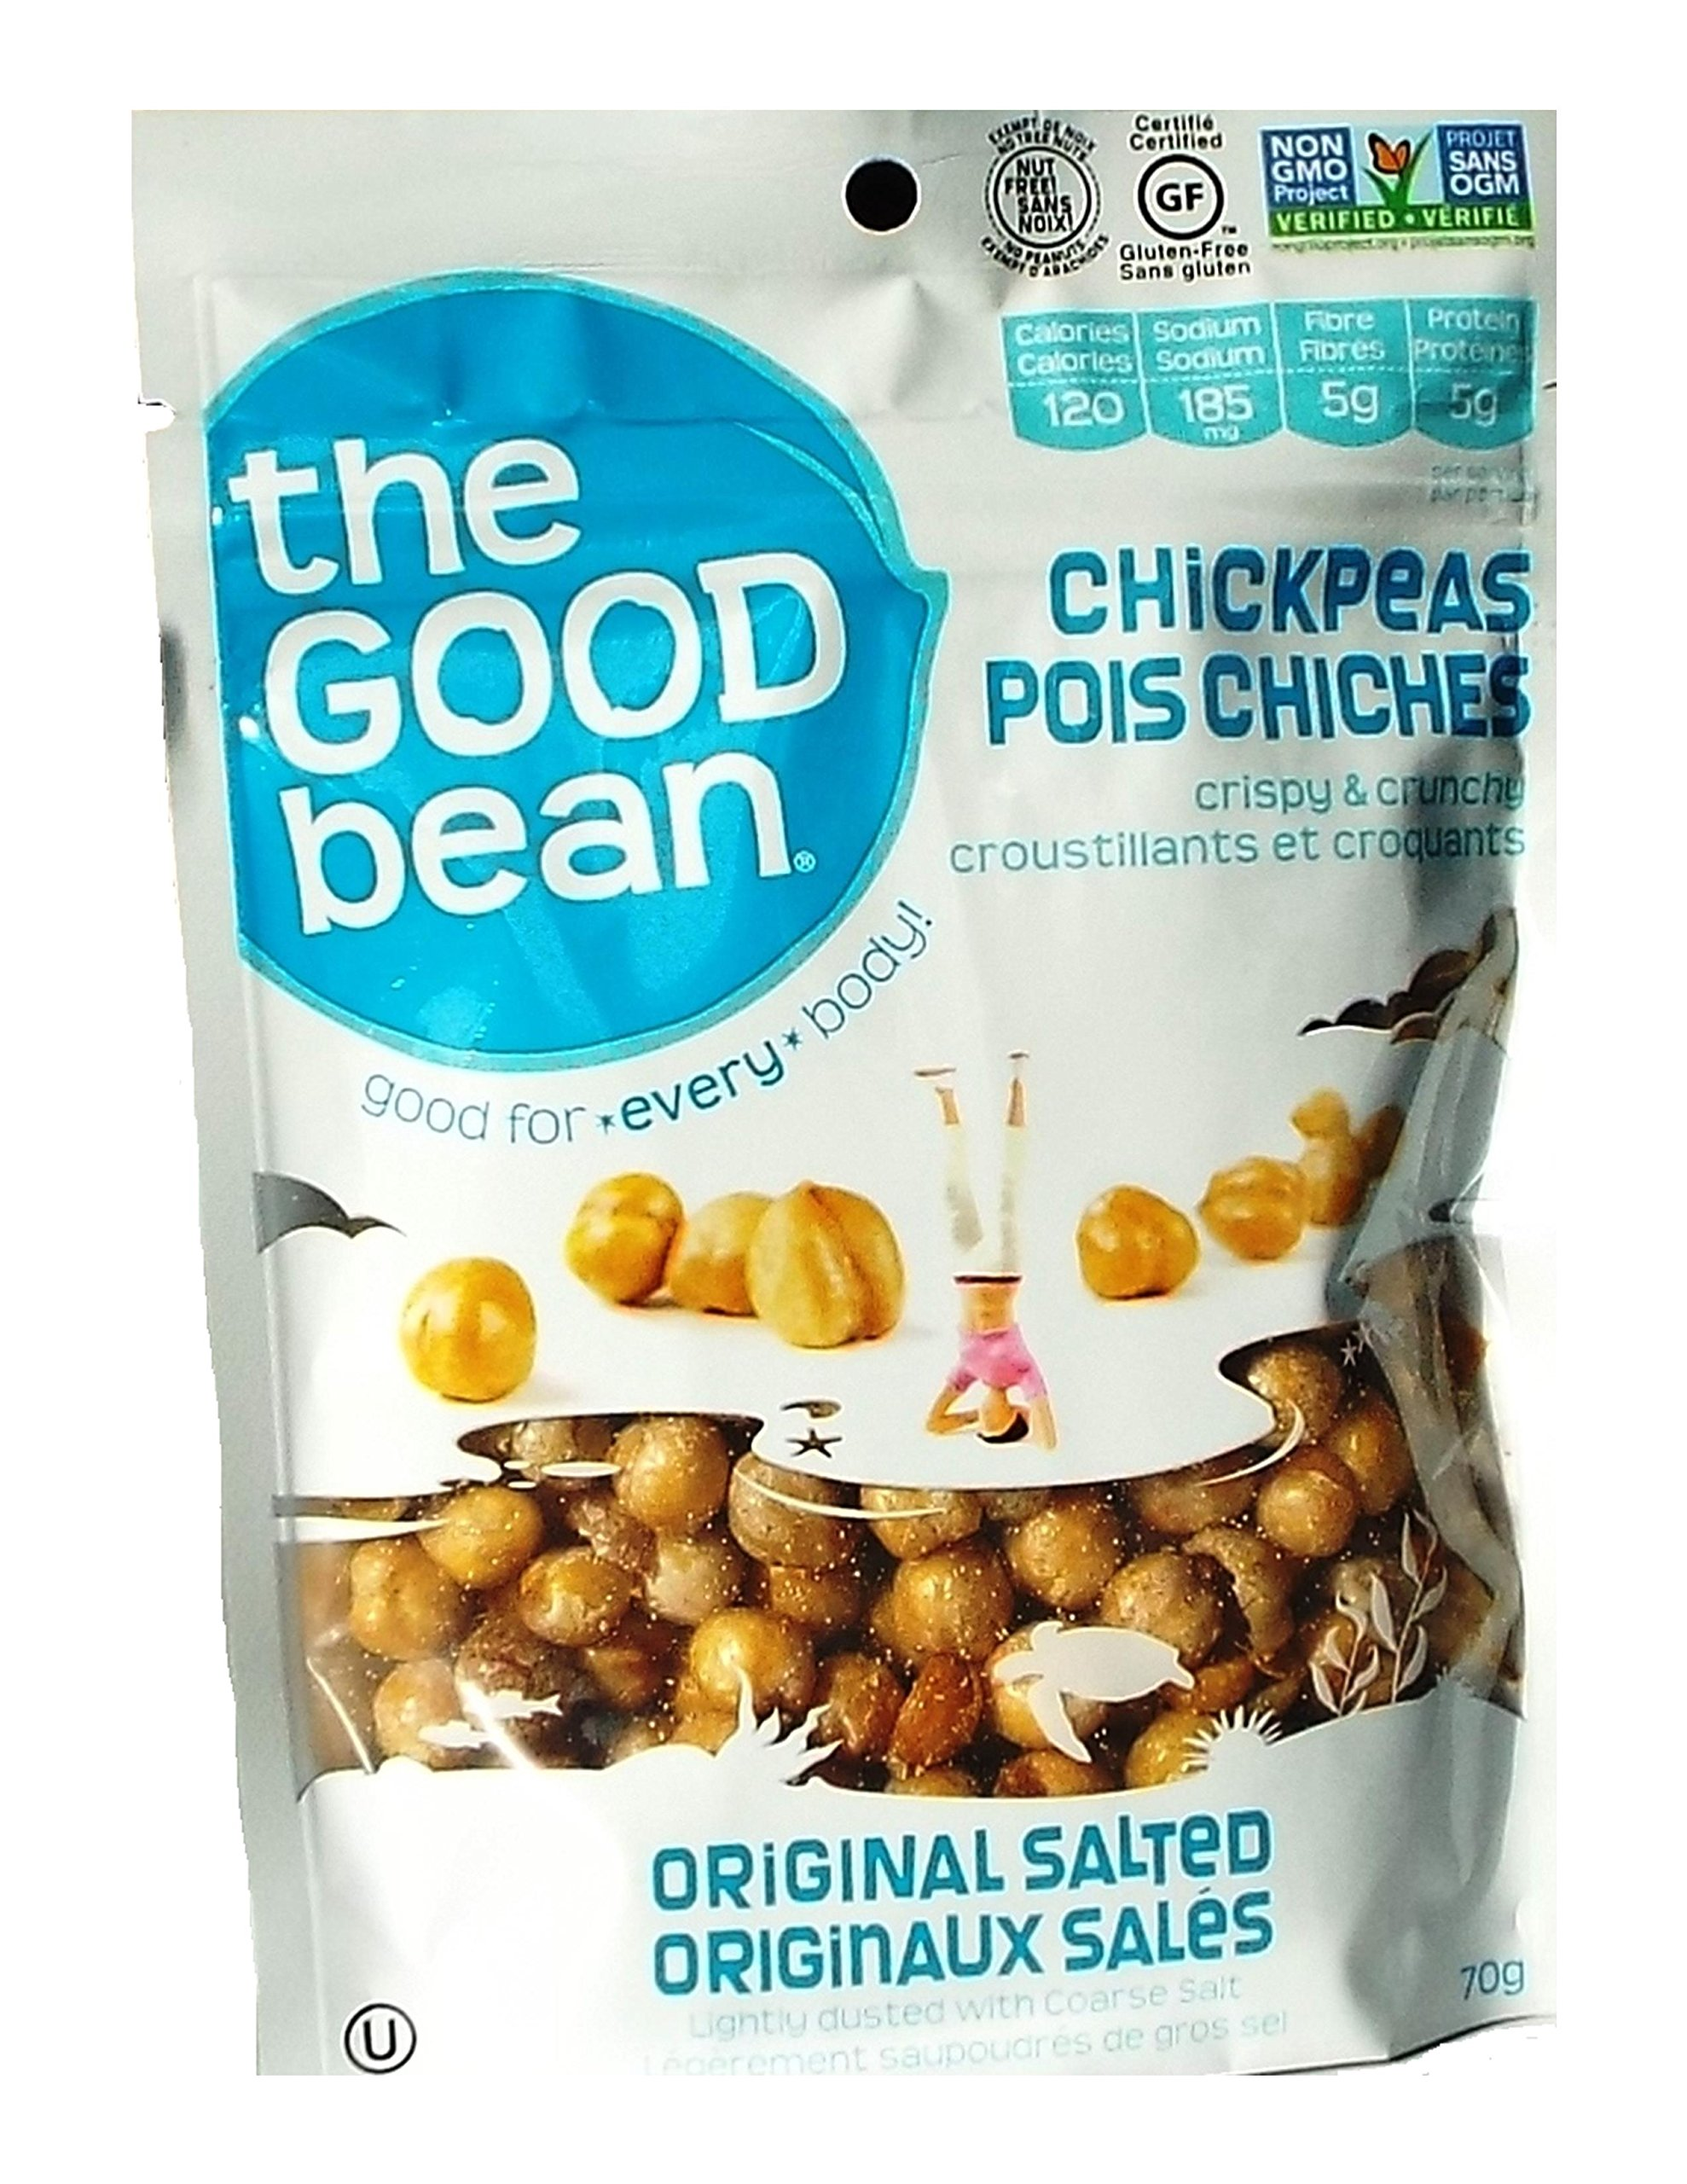 The Good Bean Chickpea Snack Seasalt, 2.5 oz by The Good Bean